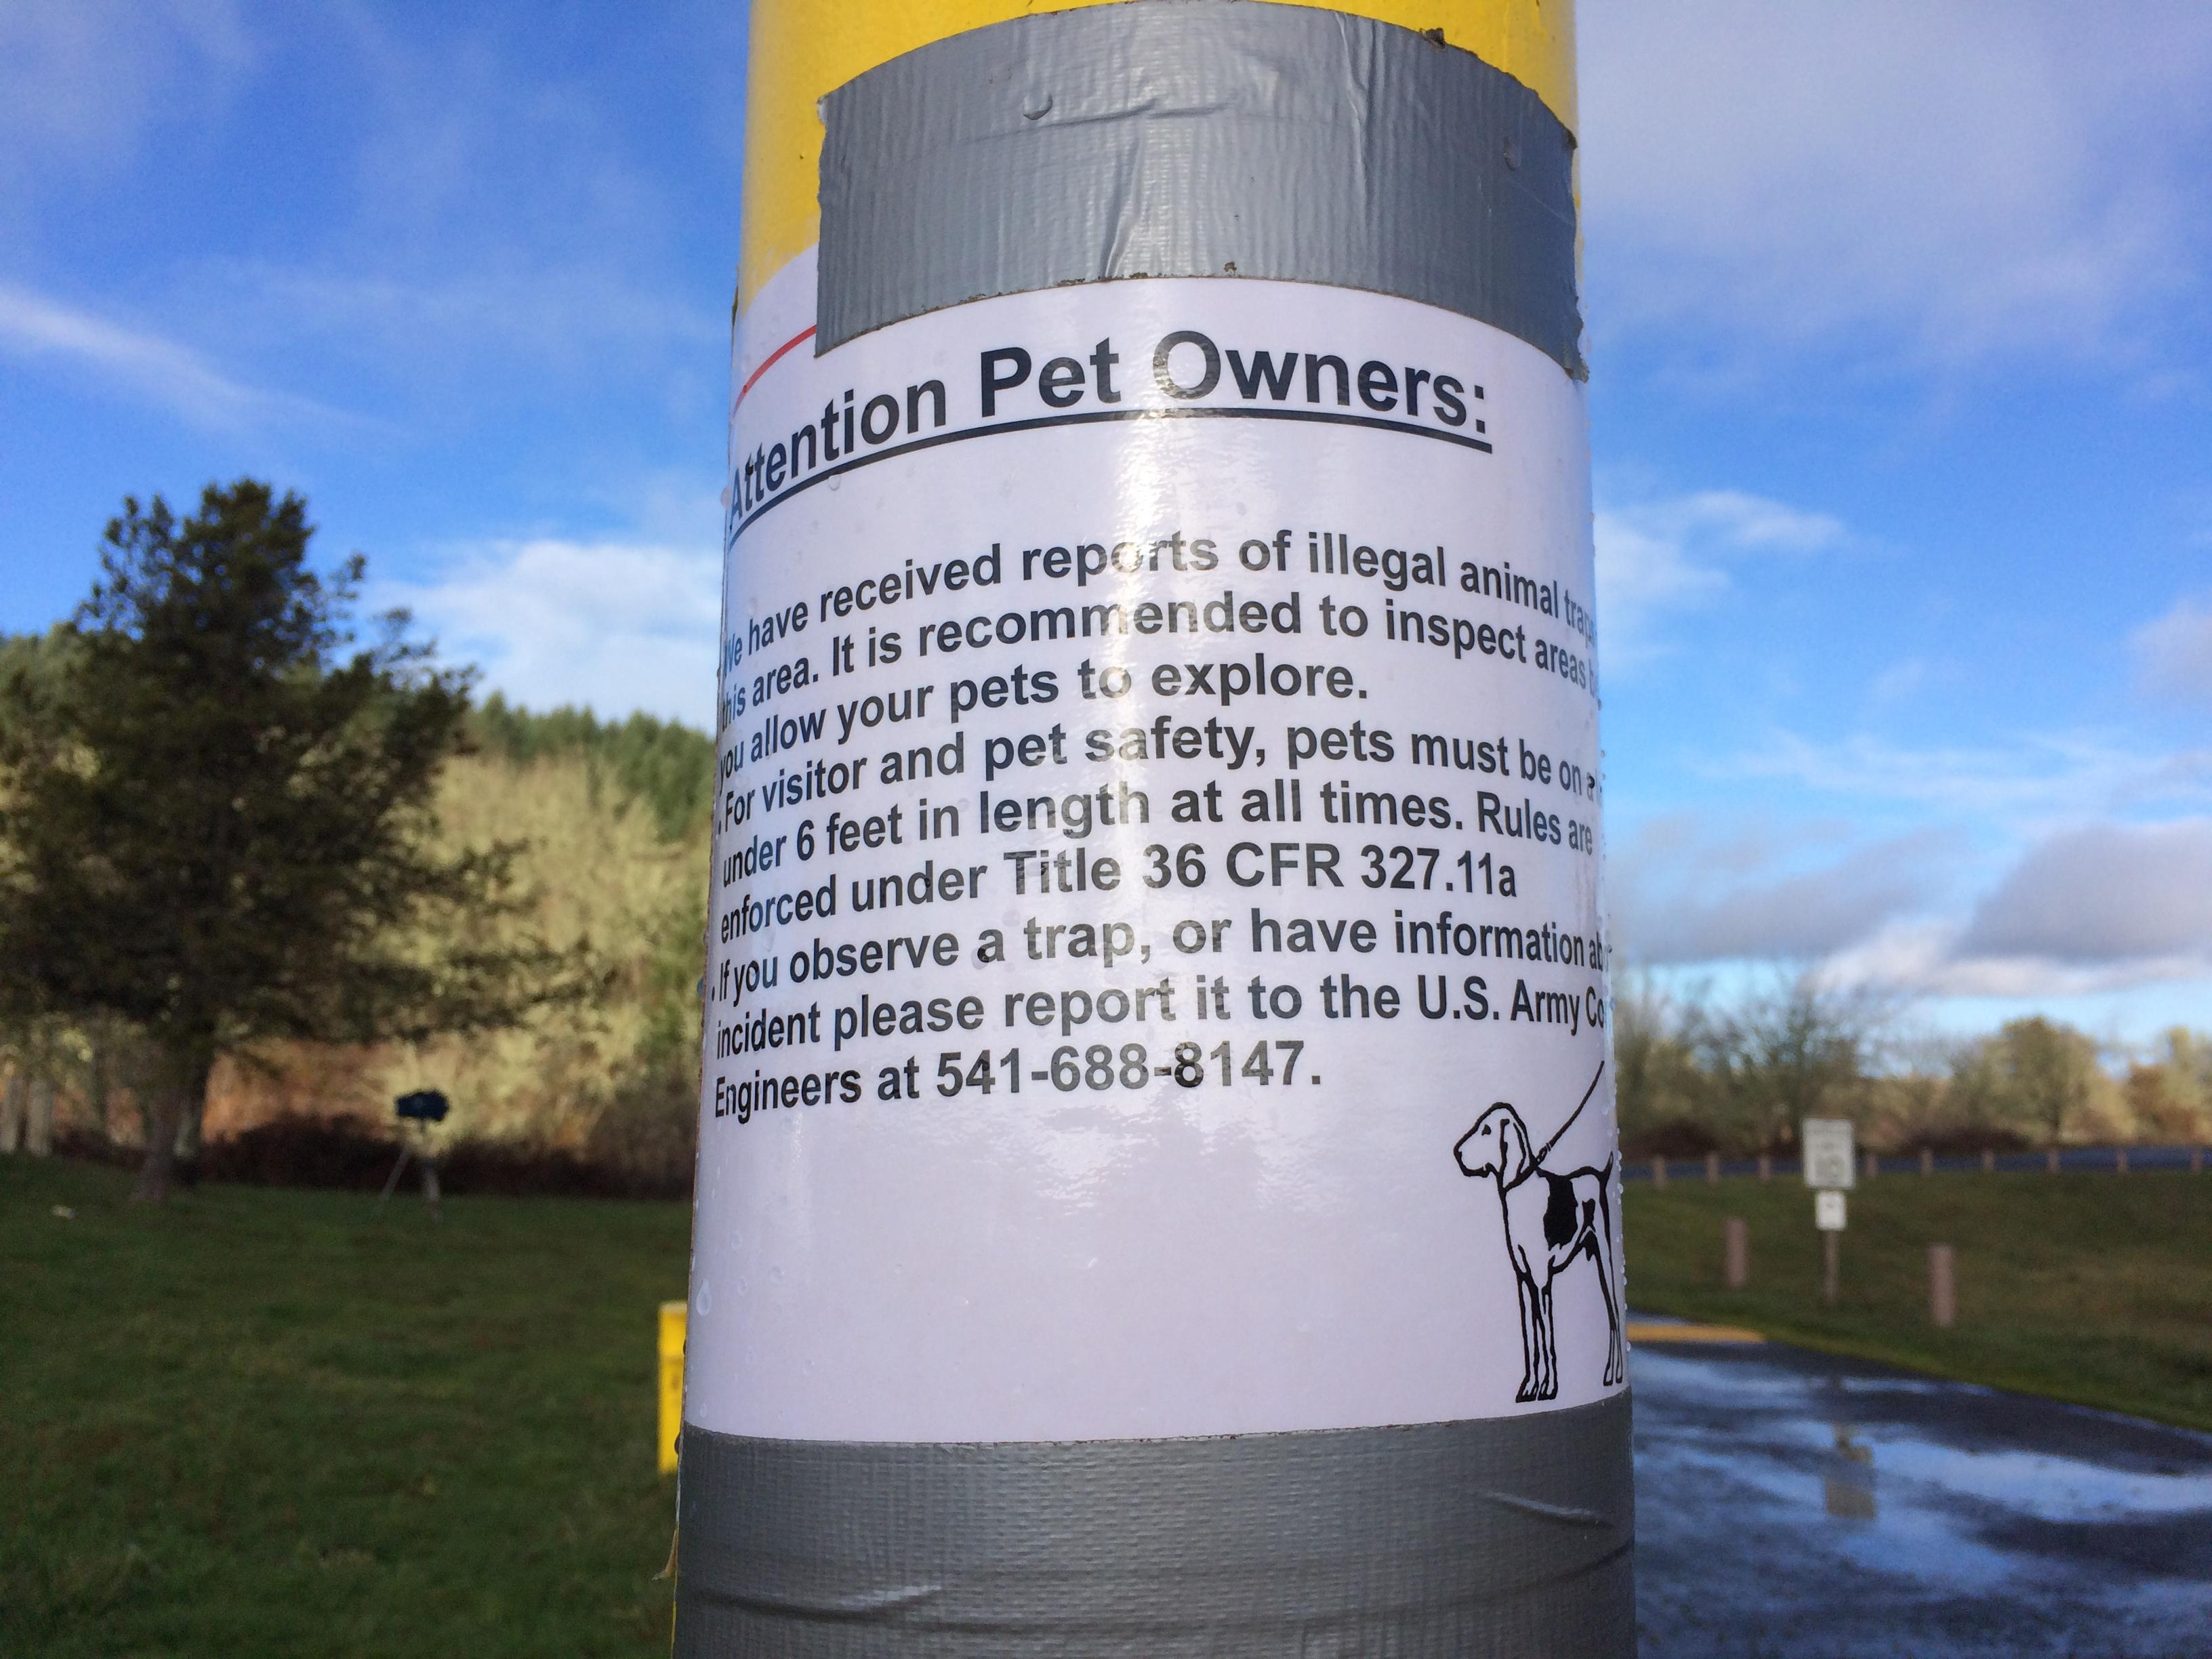 <p>The Army Corps posted a sign warning visitors of &quot;illegal animal traps&quot; and urging dog owners to keep their pets on 6-foot leashes at all times. &quot;It is recommended to inspect areas before you allow your pets to explore,&quot; the sign says. (SBG)</p>